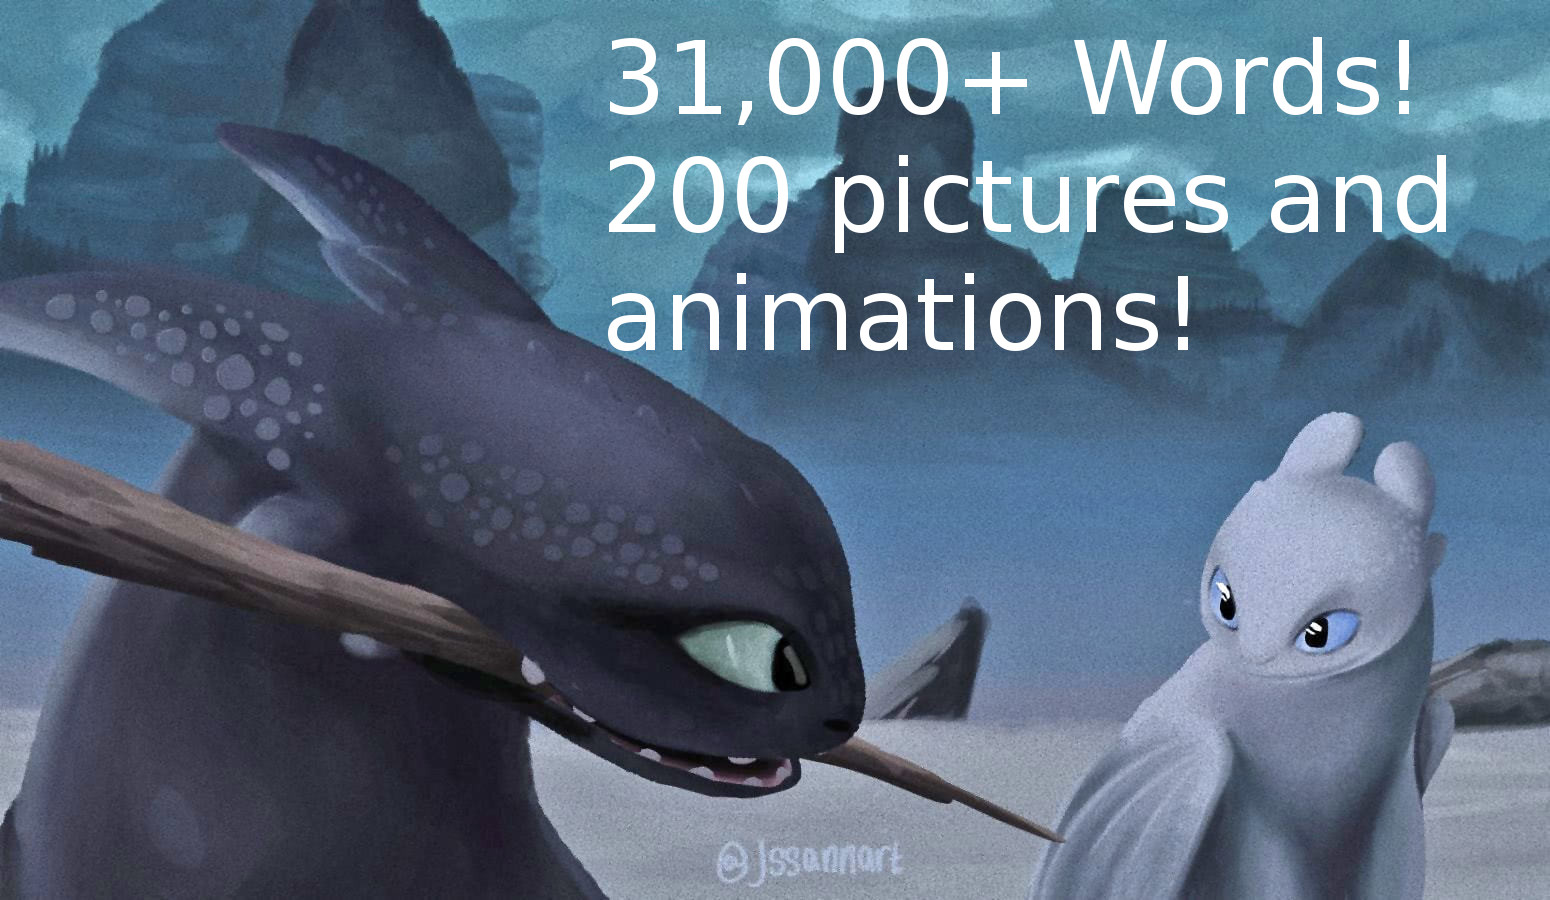 Toothless with branch in mouth next to the Light Fury. Text on image: 31,000 plus words, 200 pictures and animations.